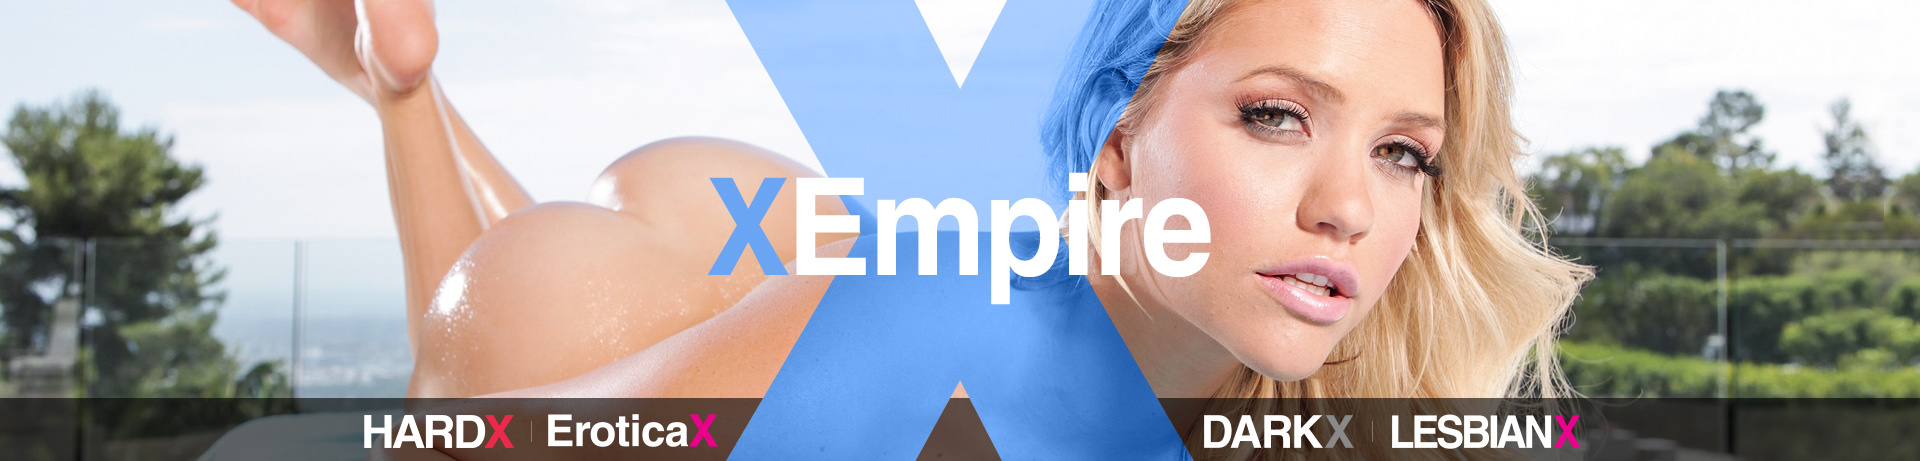 Your membership gives you access to the entire XEmpire Network of sites. For free